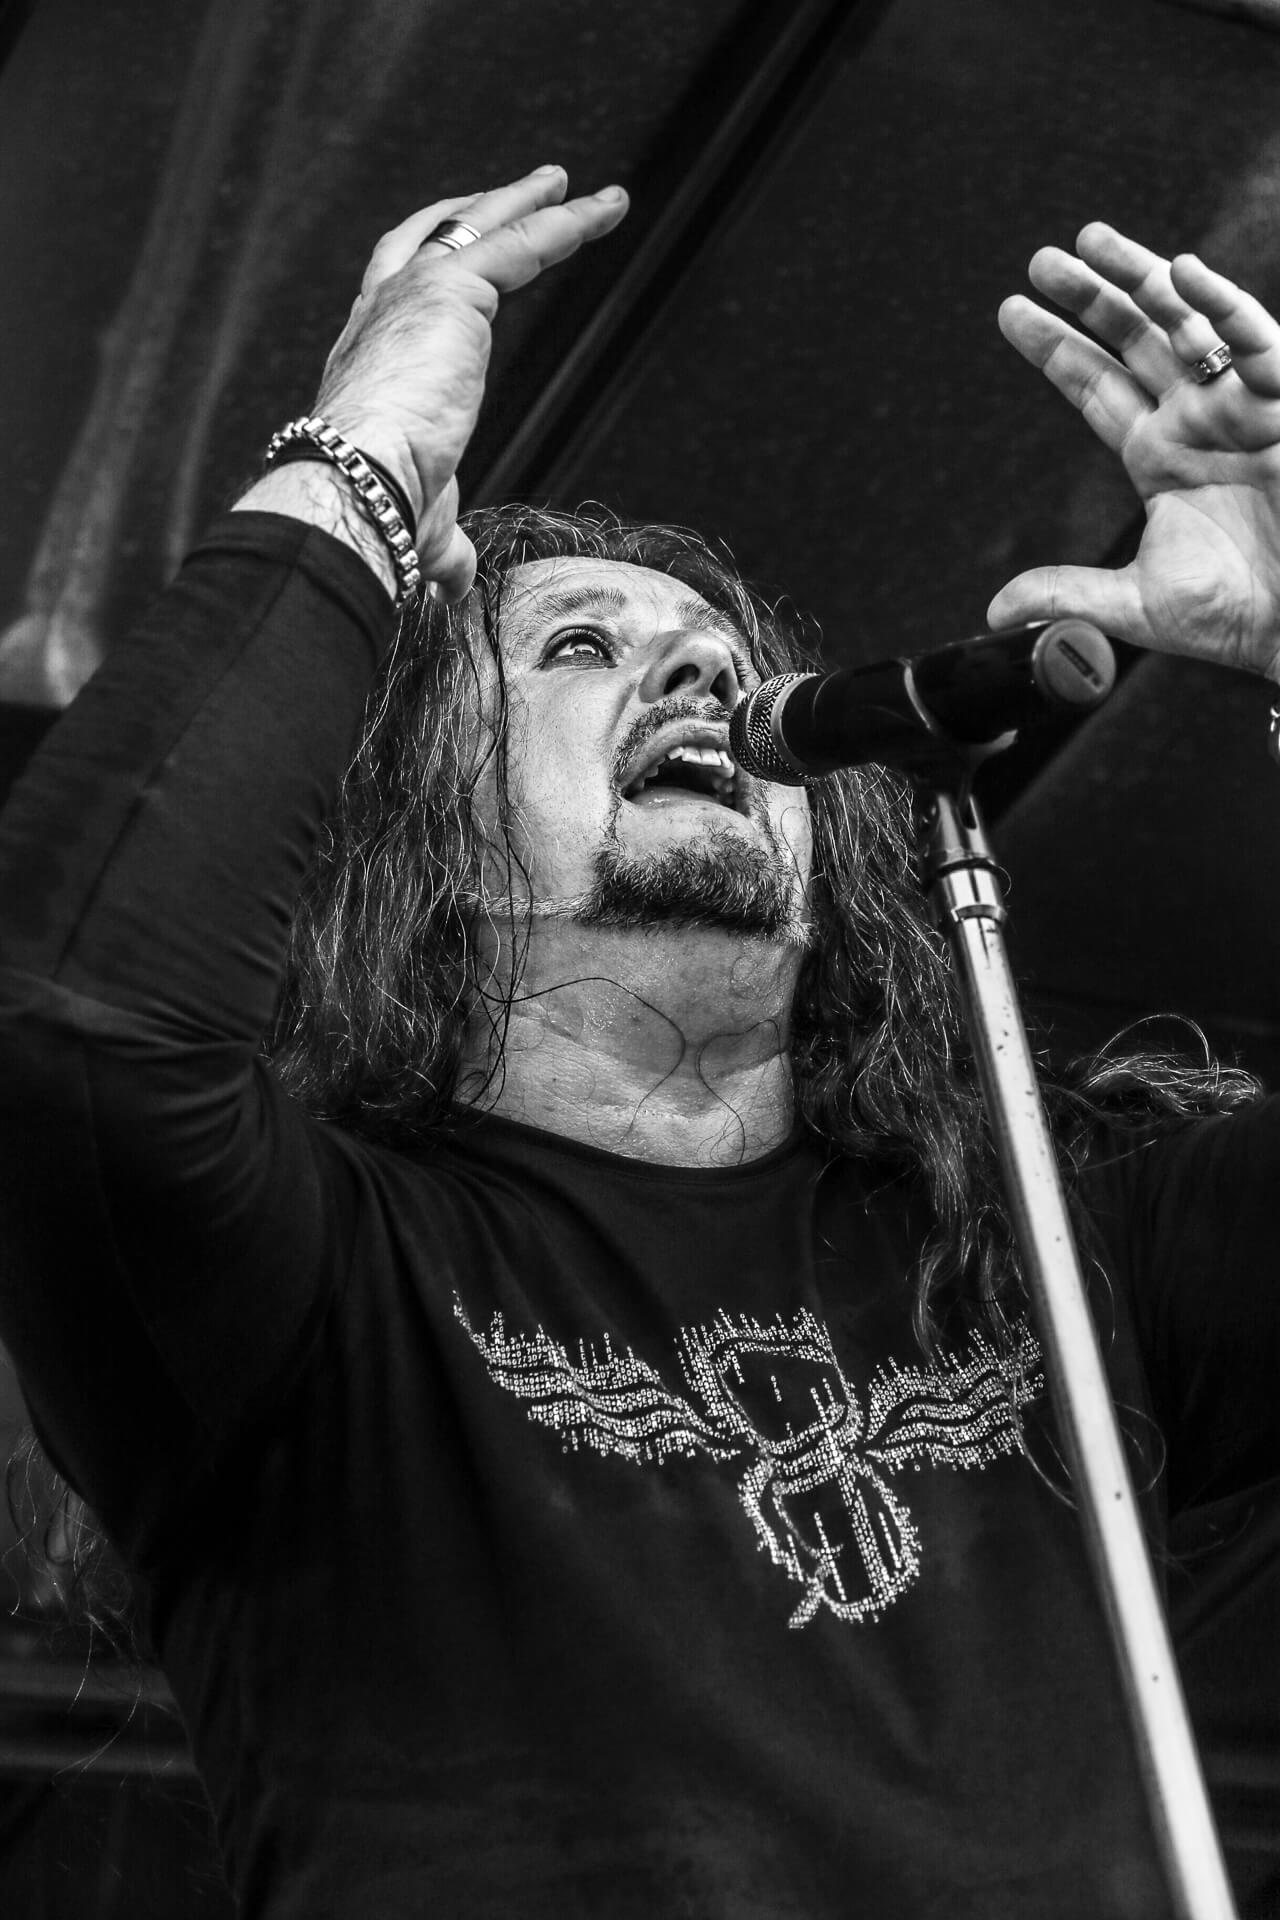 Tony Peacock, frontman of Sabbotage, a Black Sabbath tribute band seen on stage at The Drunken Monkey Rock Festival in 2019 with the band. Tony is seen in this image arms raised up near his head as he sings into the mic.